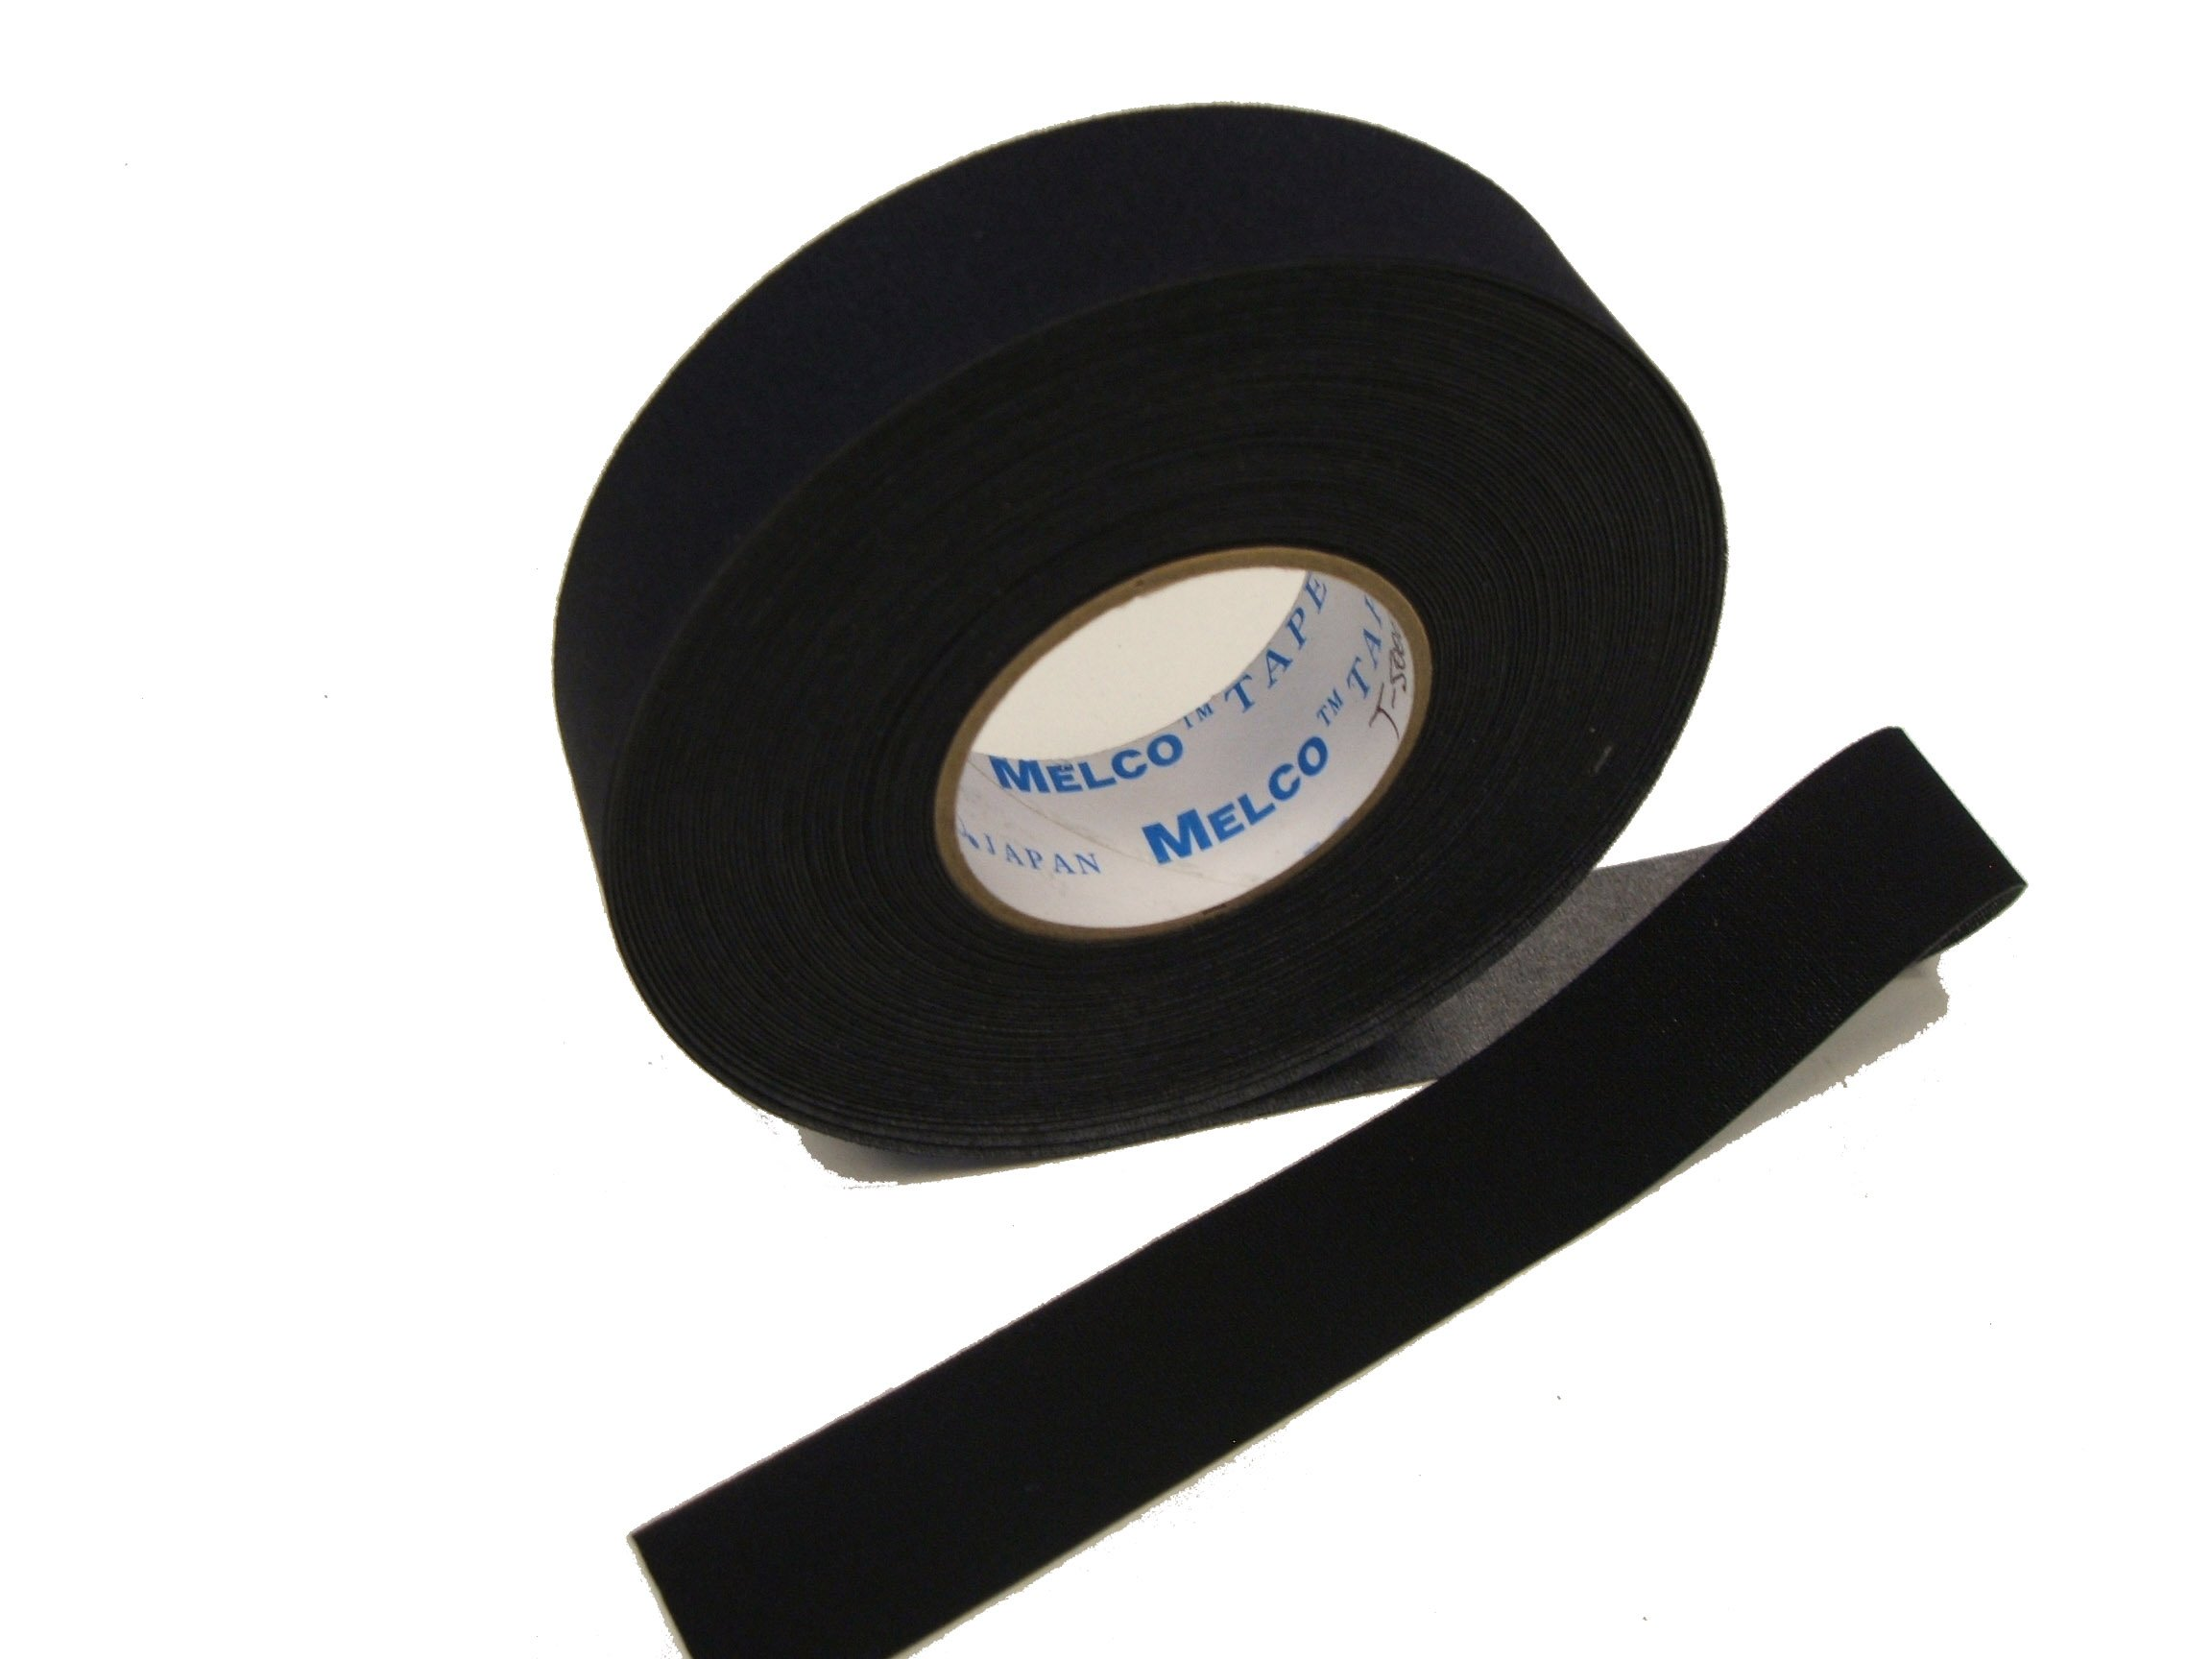 Cinta sellado neopreno Tape Melco T-5000 1